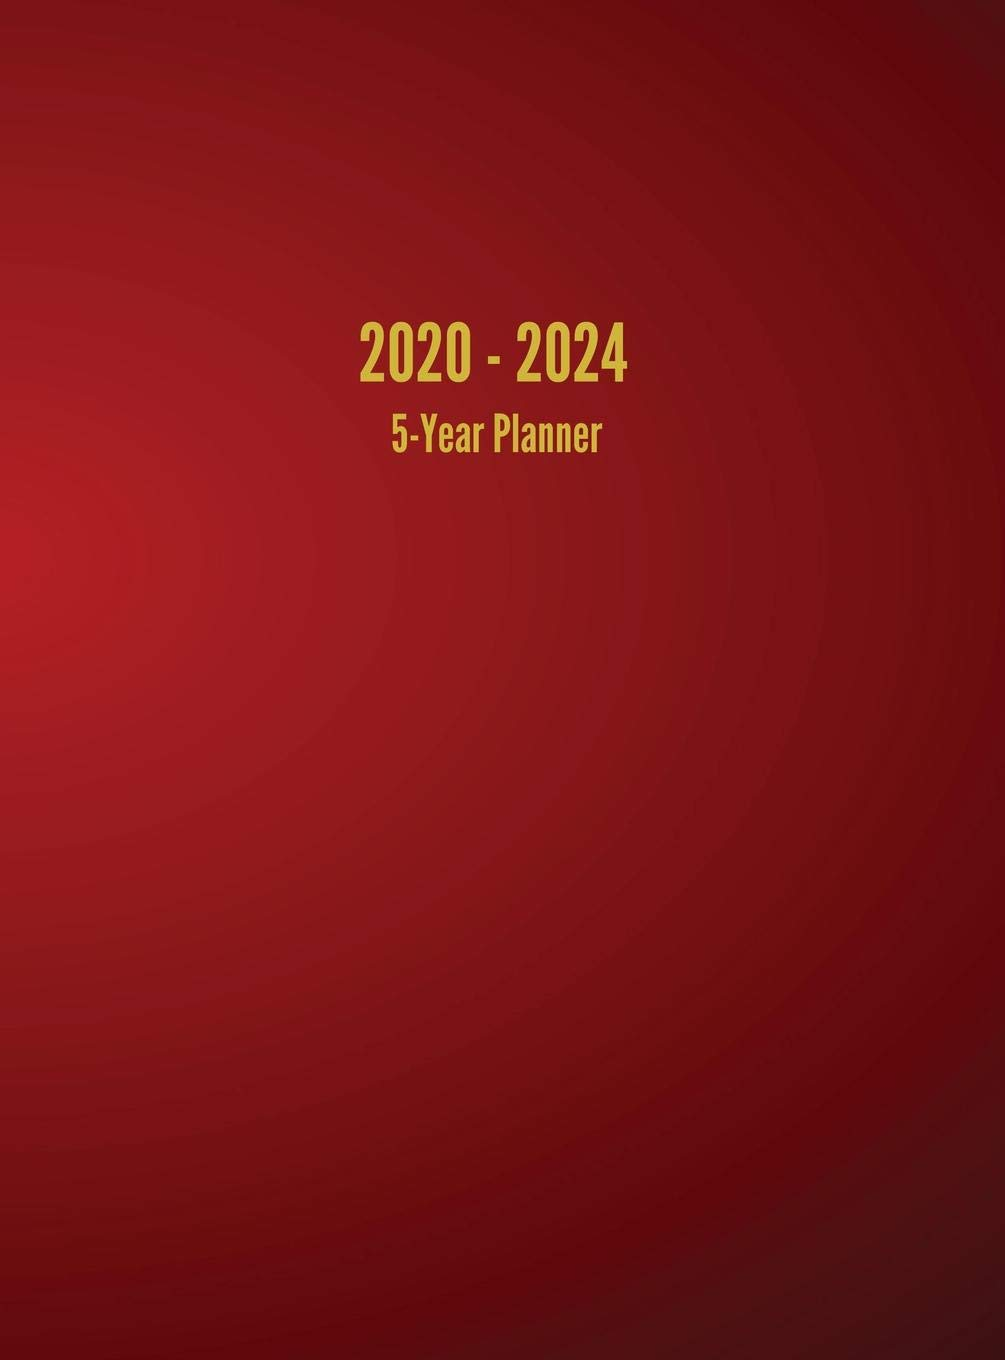 2020 – 2024 5-Year Planner: 60-Month Calendar (Red)